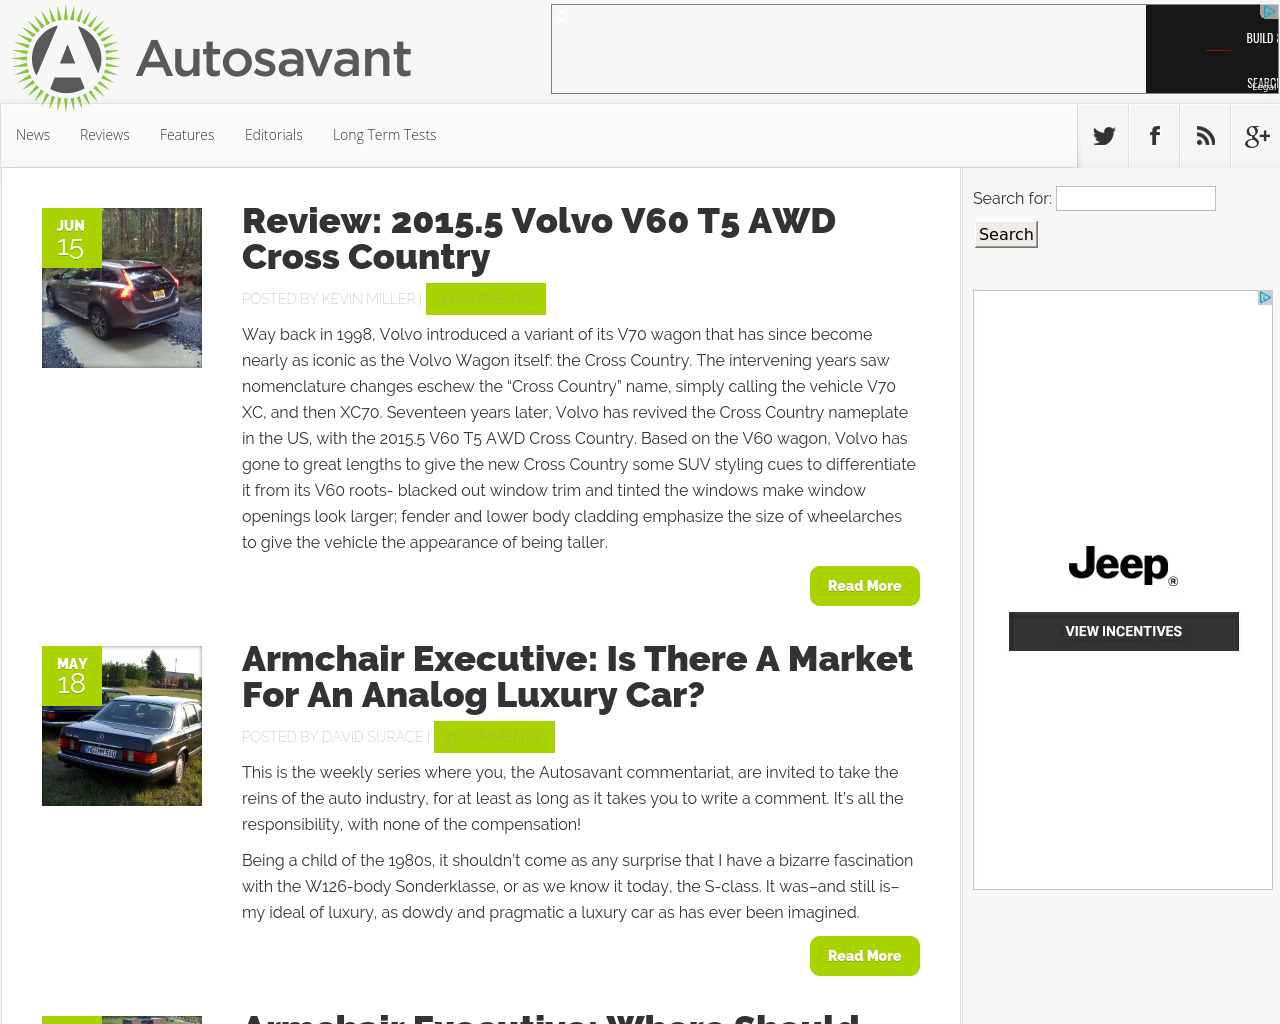 Autosavant-Advertising-Reviews-Pricing